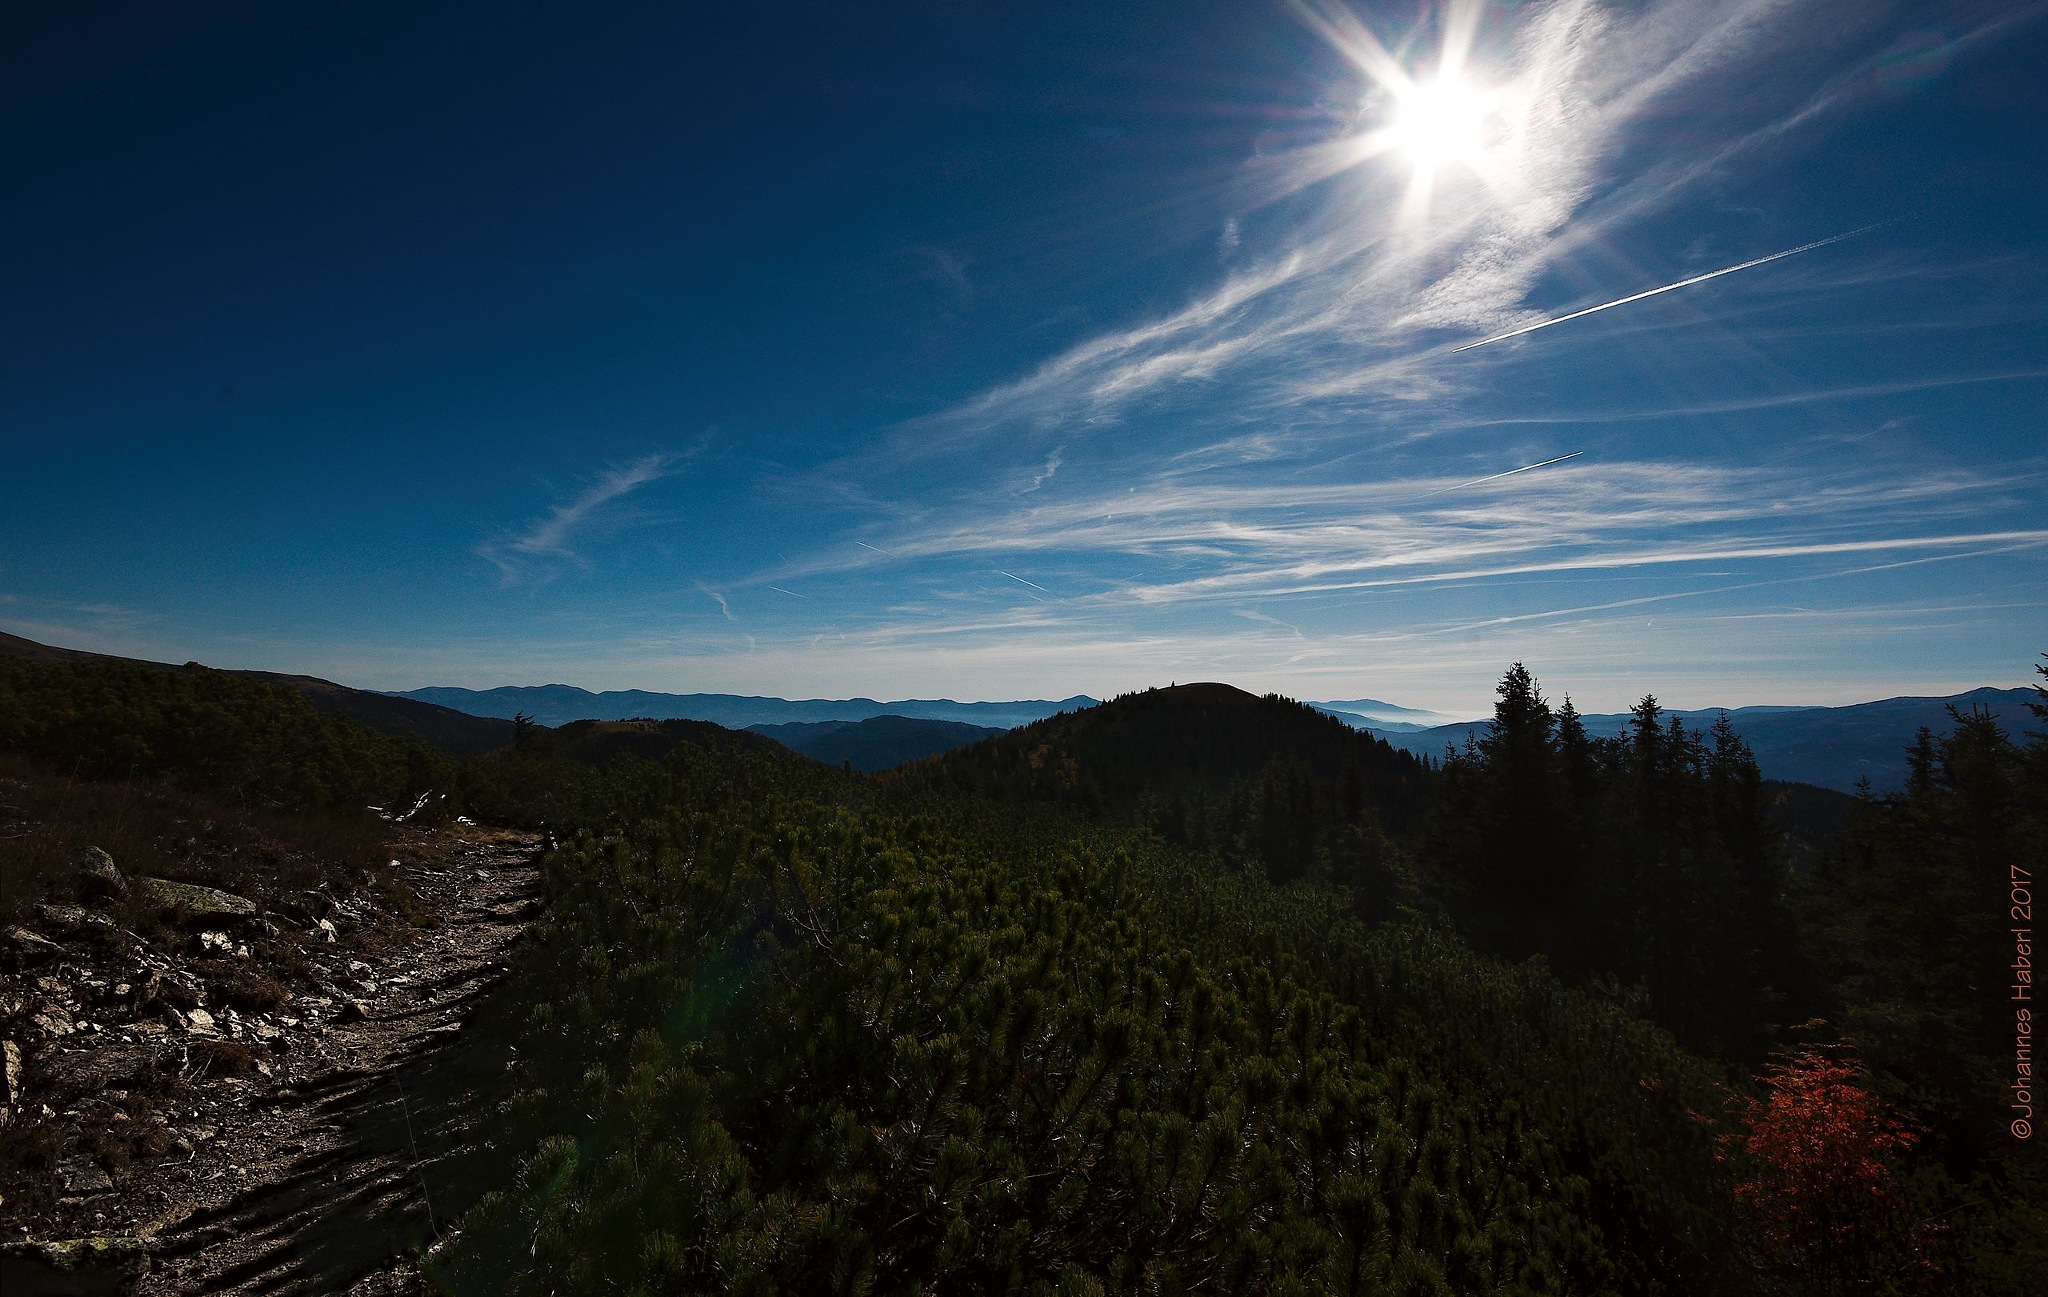 path - deep green mountain pine - forest, some red - blue sky / high contrast  by Johannes Haberl